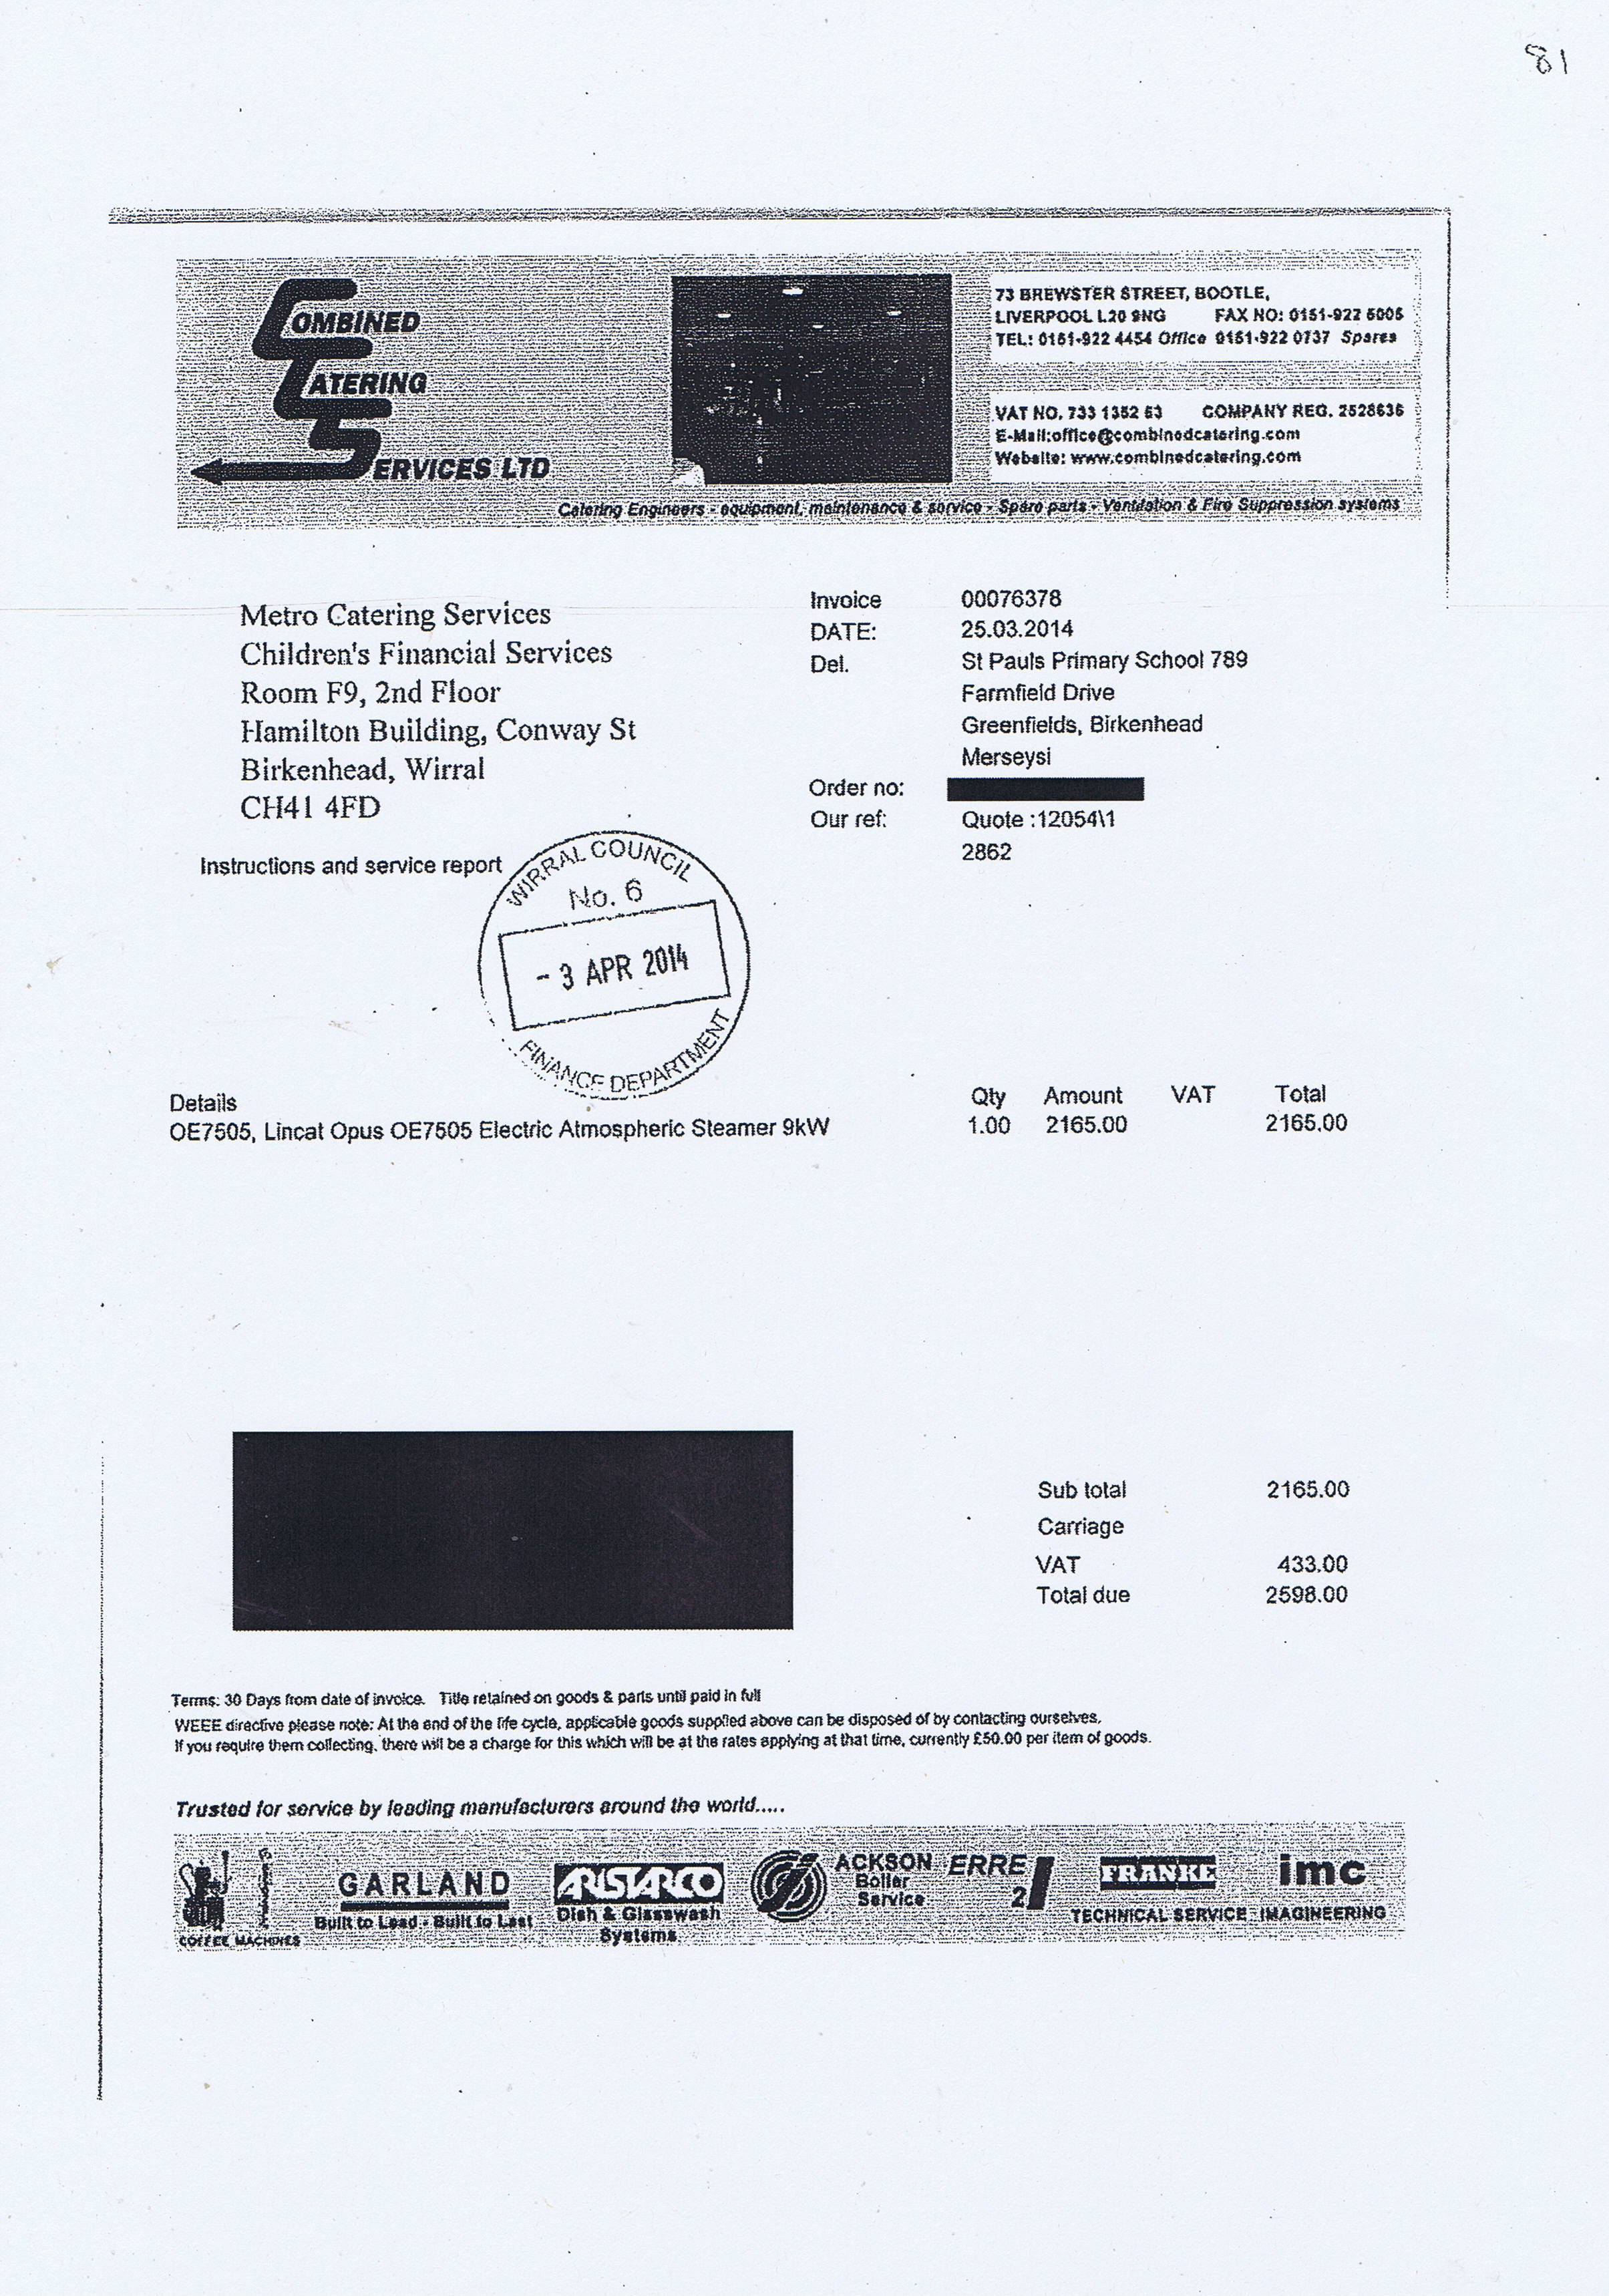 Wirral Council invoice 81 Combined Catering Services Ltd £2598